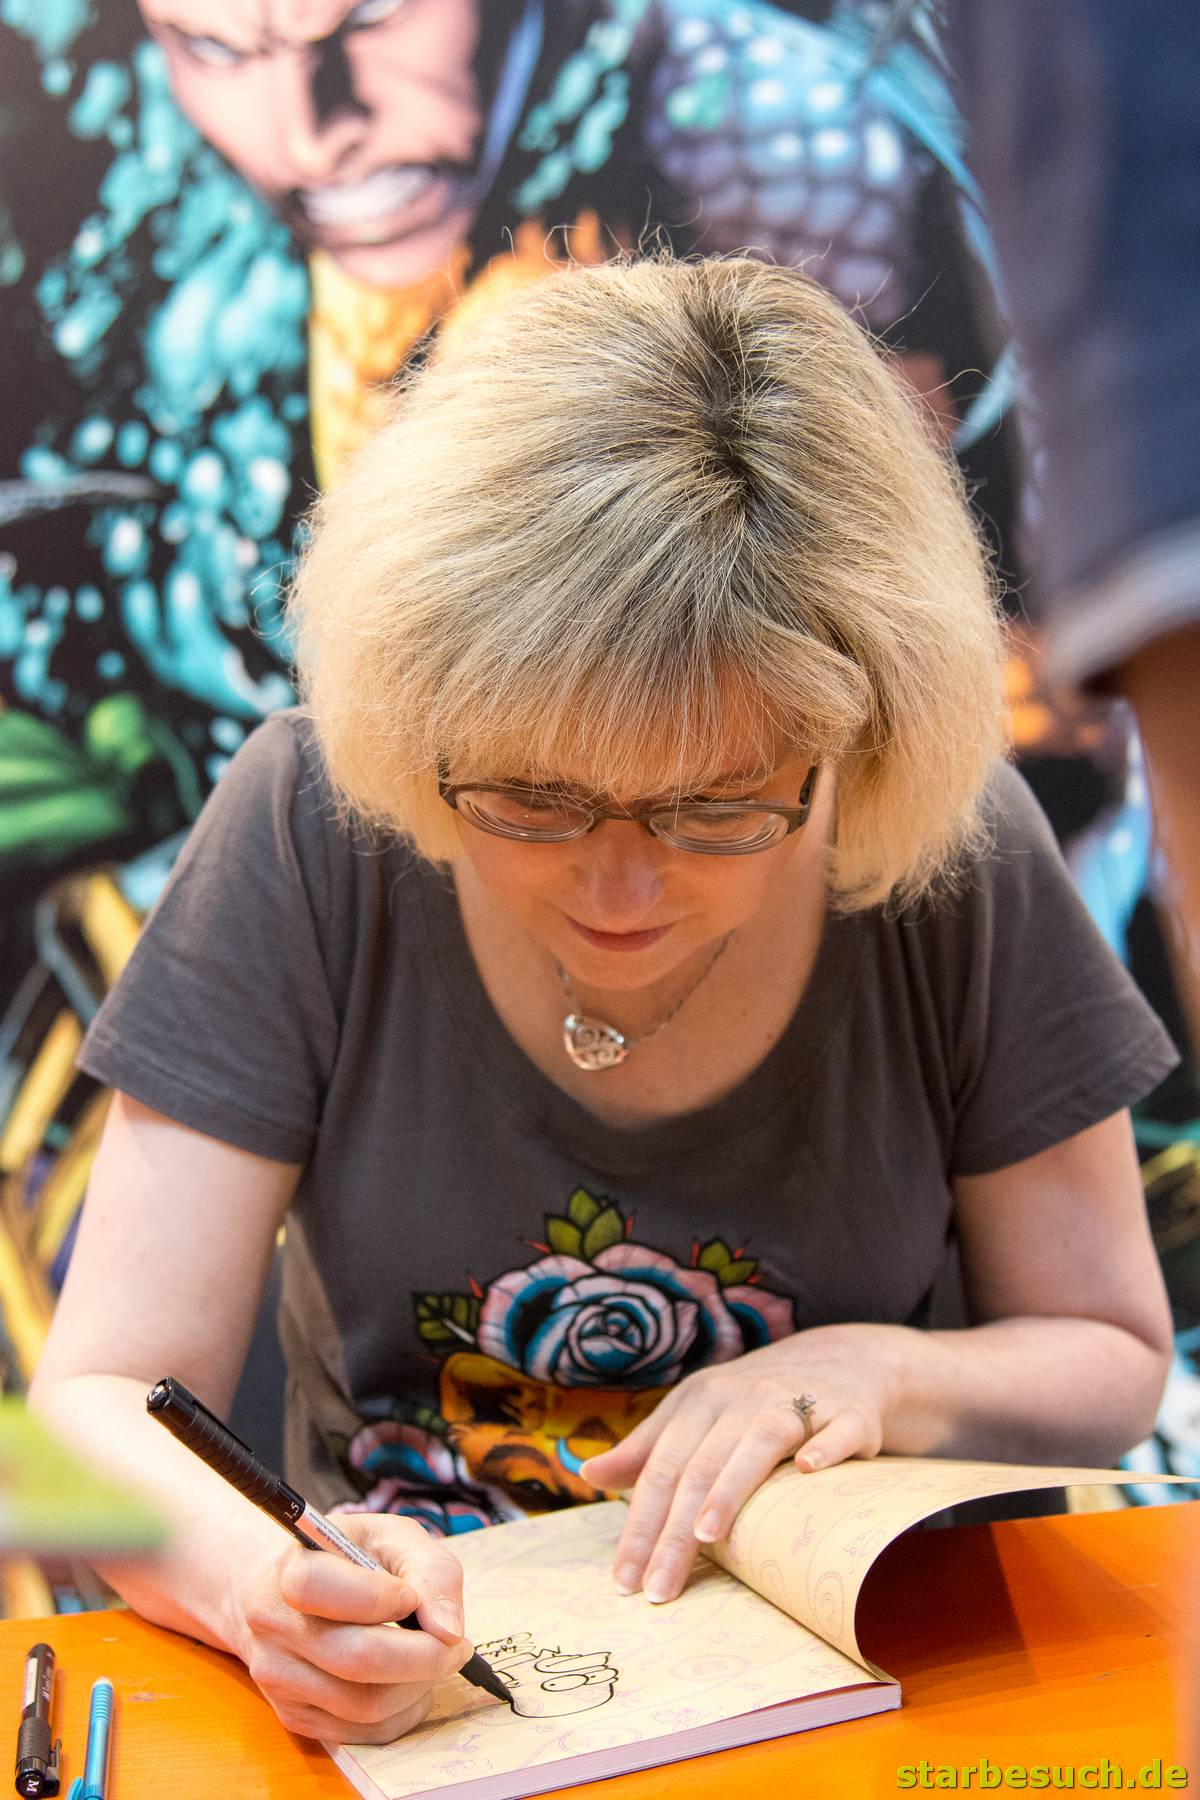 July 1st 2017. Stuttgart, Germany. .US comic artist Stephanie Gladden (Simpsons, Bongo Comics). Comic-Con Stuttgart invites fans and cos-players to meet celebrities and comic artists in panels, Q&As, photo and signing sessions